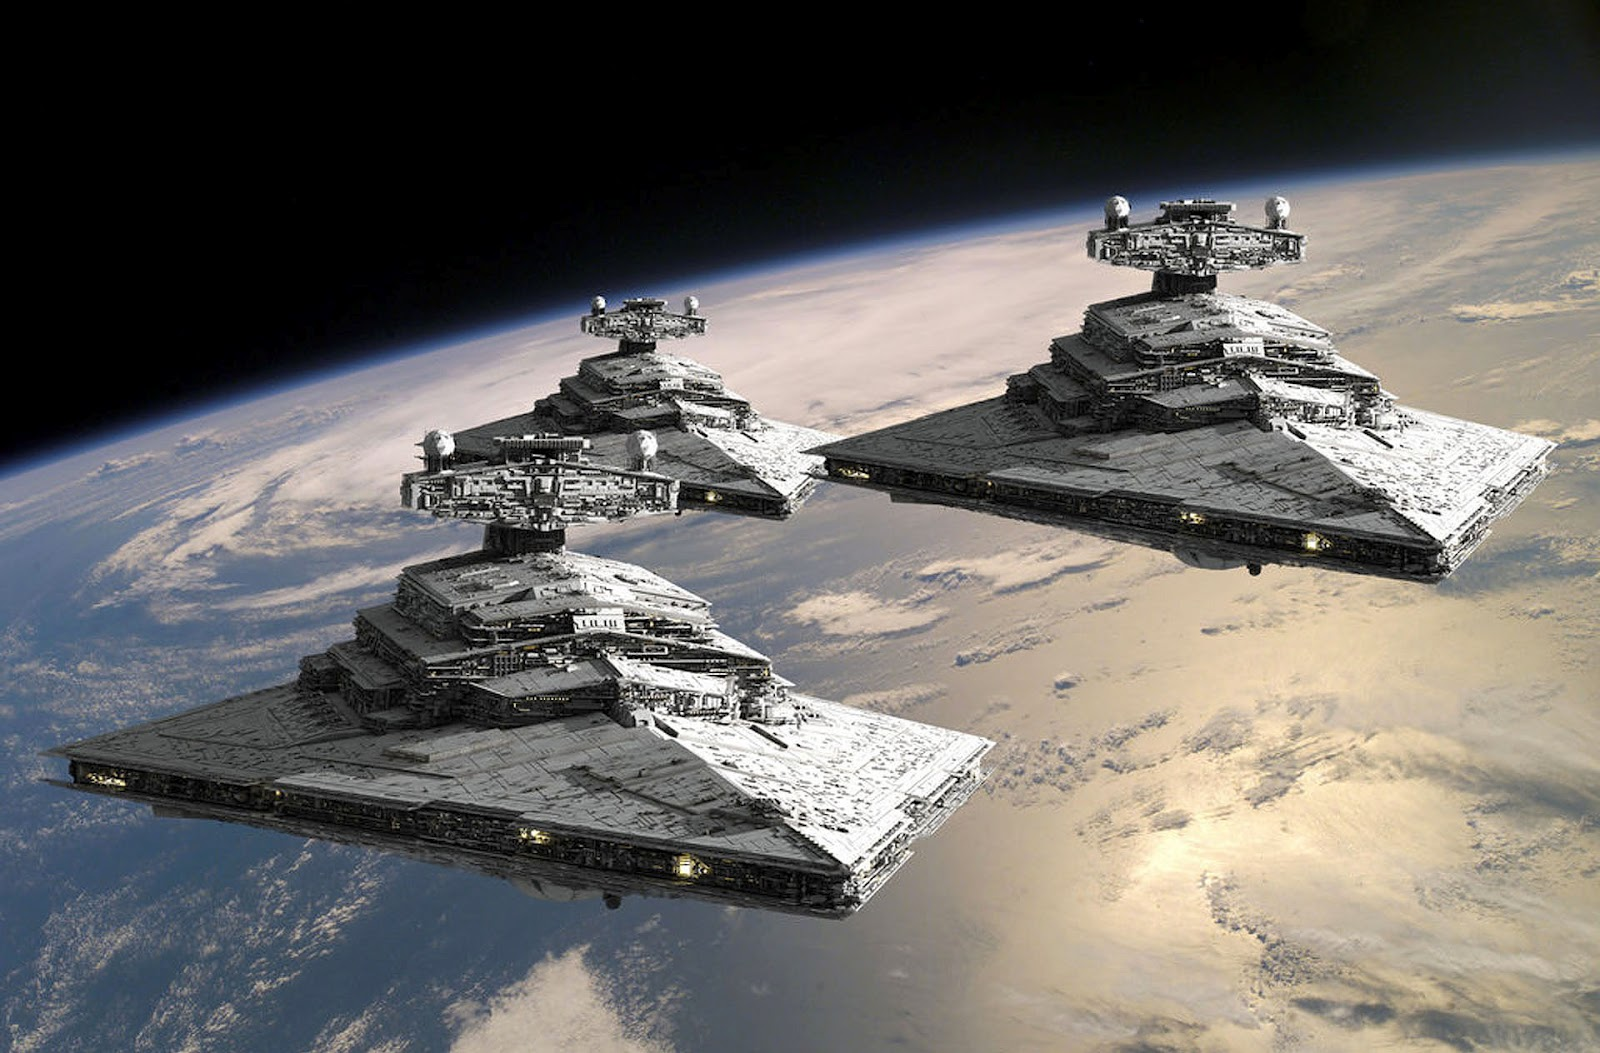 50 Star Wars Ships Wallpaper On Wallpapersafari